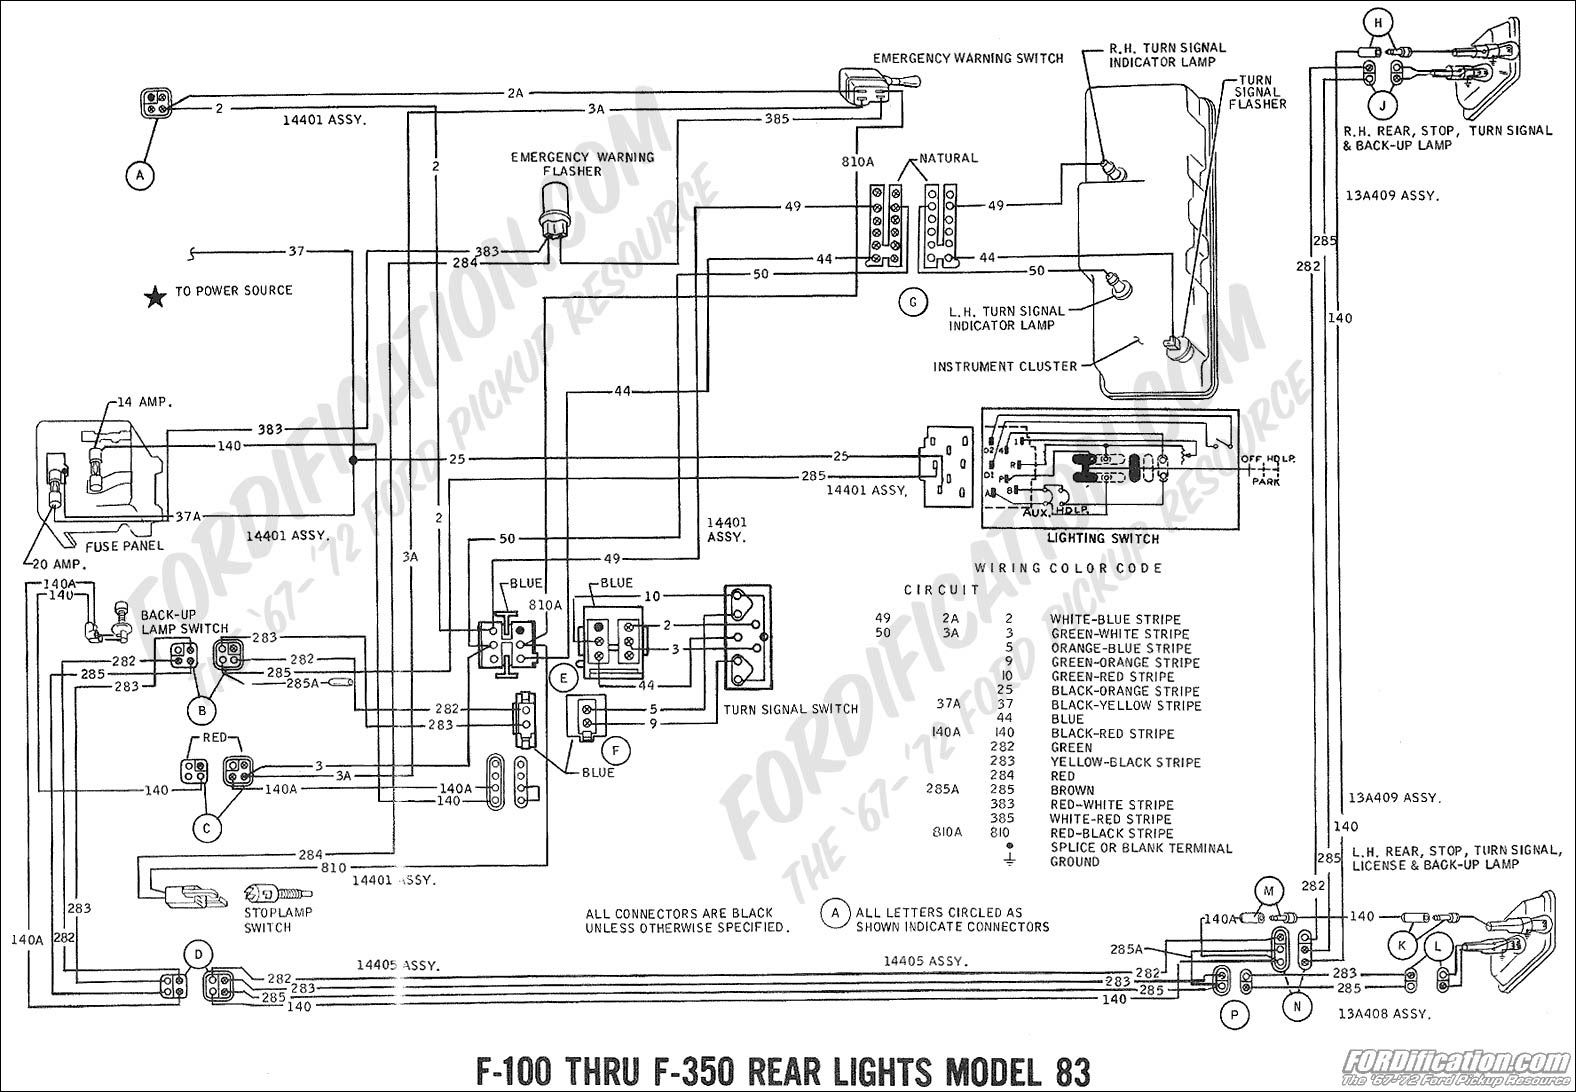 69 Ford F350 Wiring Diagram Wiring Diagram United United Maceratadoc It